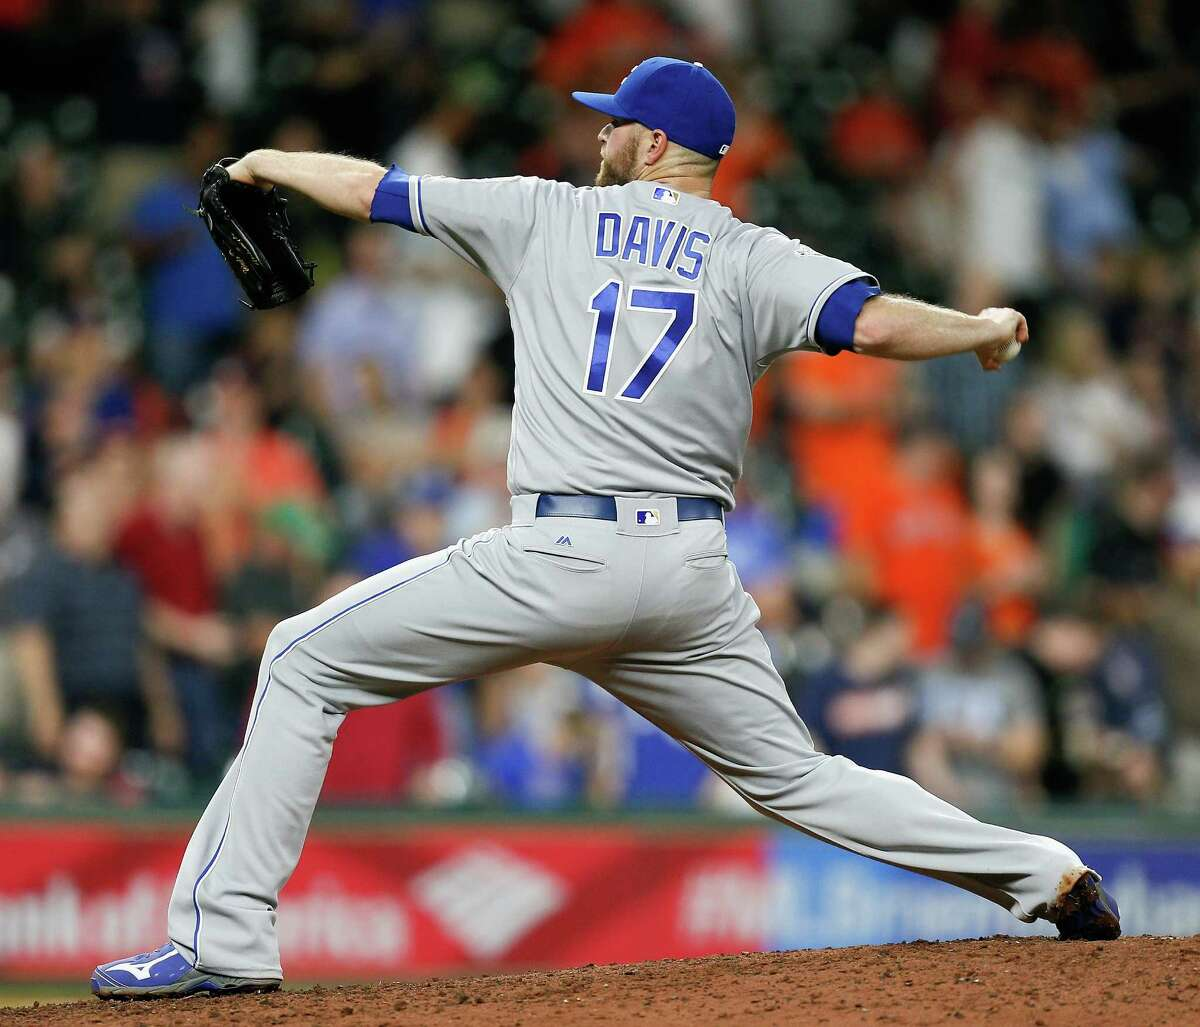 Wade Davis, closer The 32-year-old Davis is the best reliever on the market, which means he's automatically being mentioned as someone in who the Astros are interested. After saving 27 games for the Royals in 2016, Davis had 32 saves with the Cubs this season.